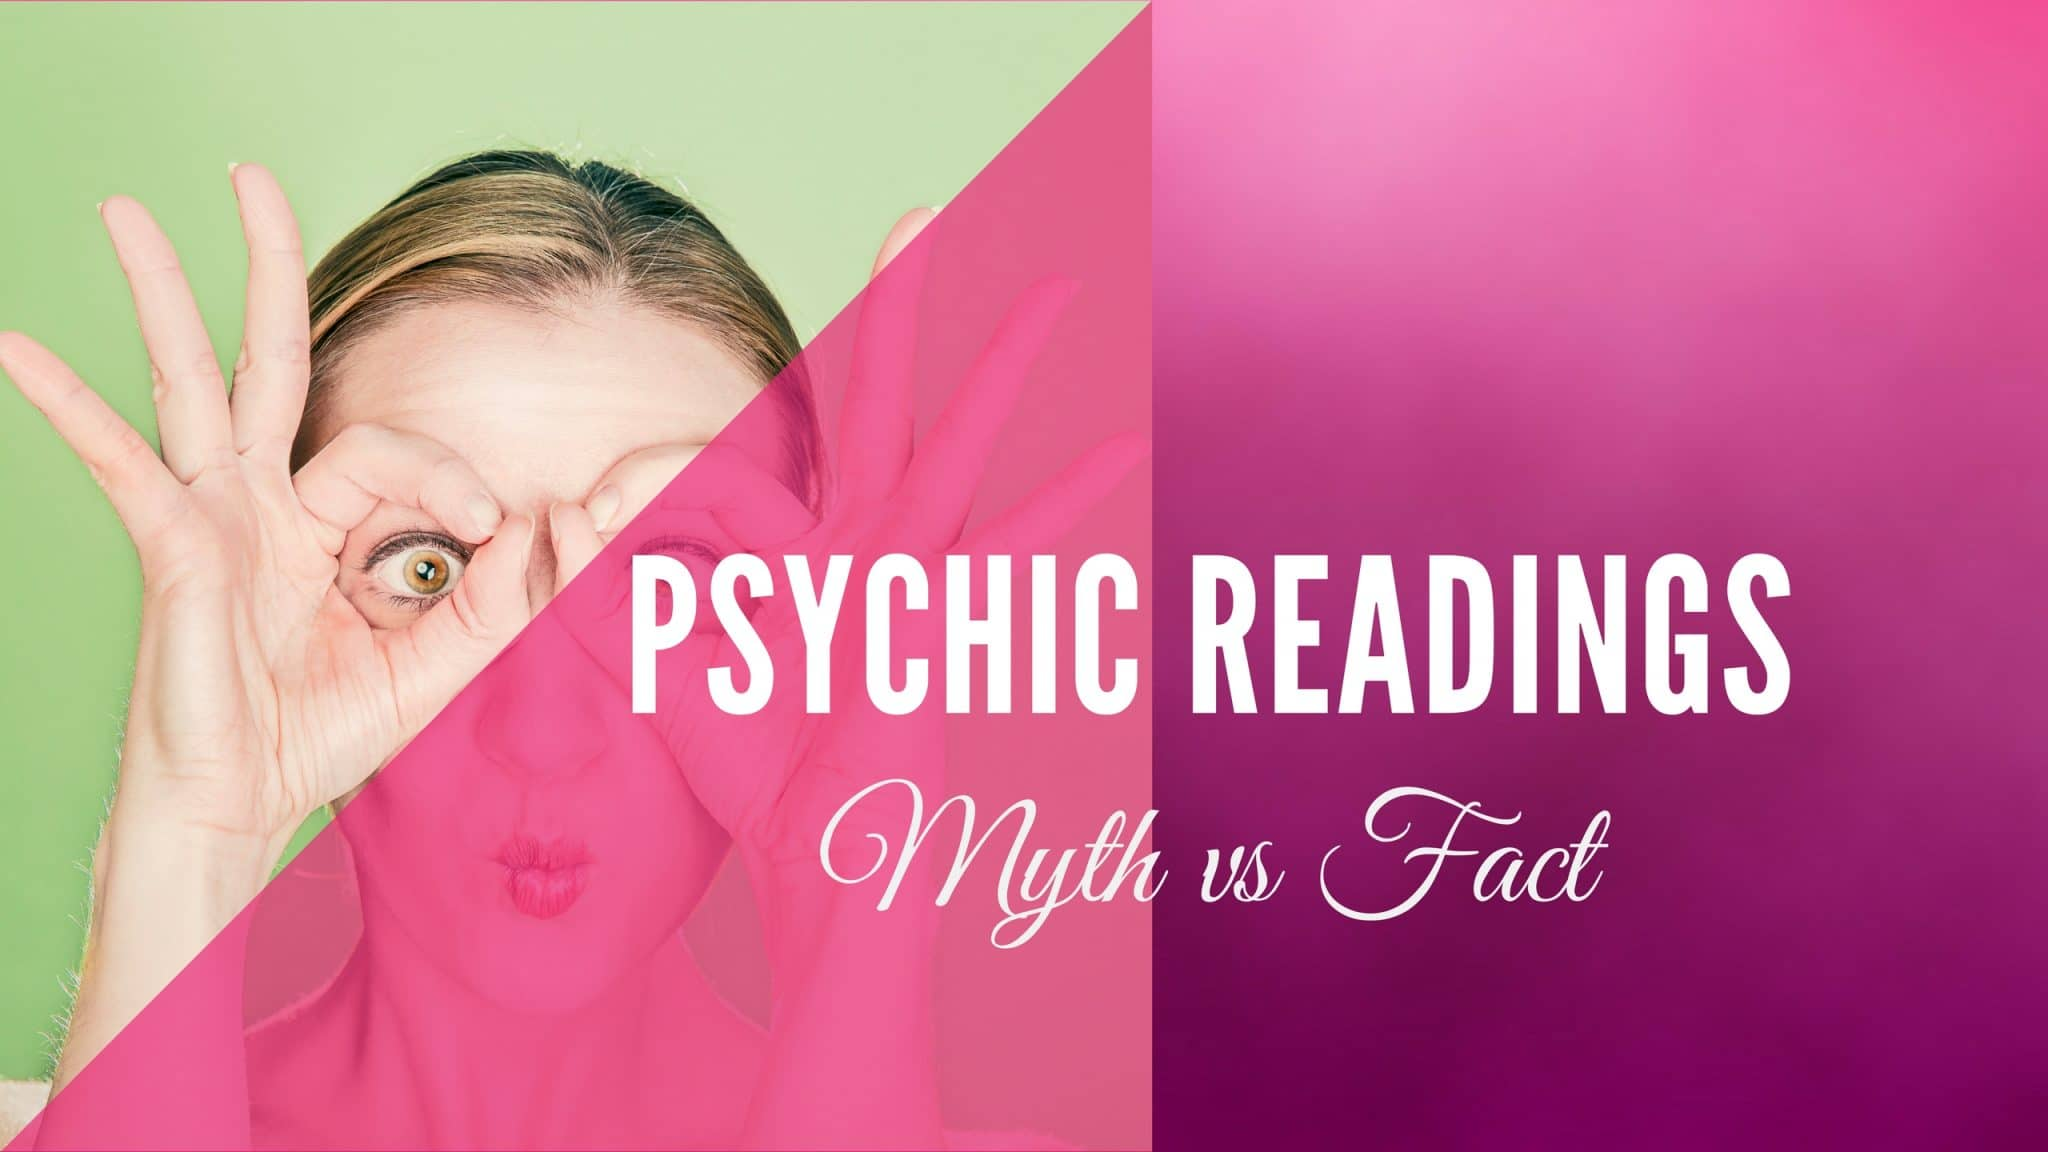 Psychic Readings: Separating the Myths from the Facts